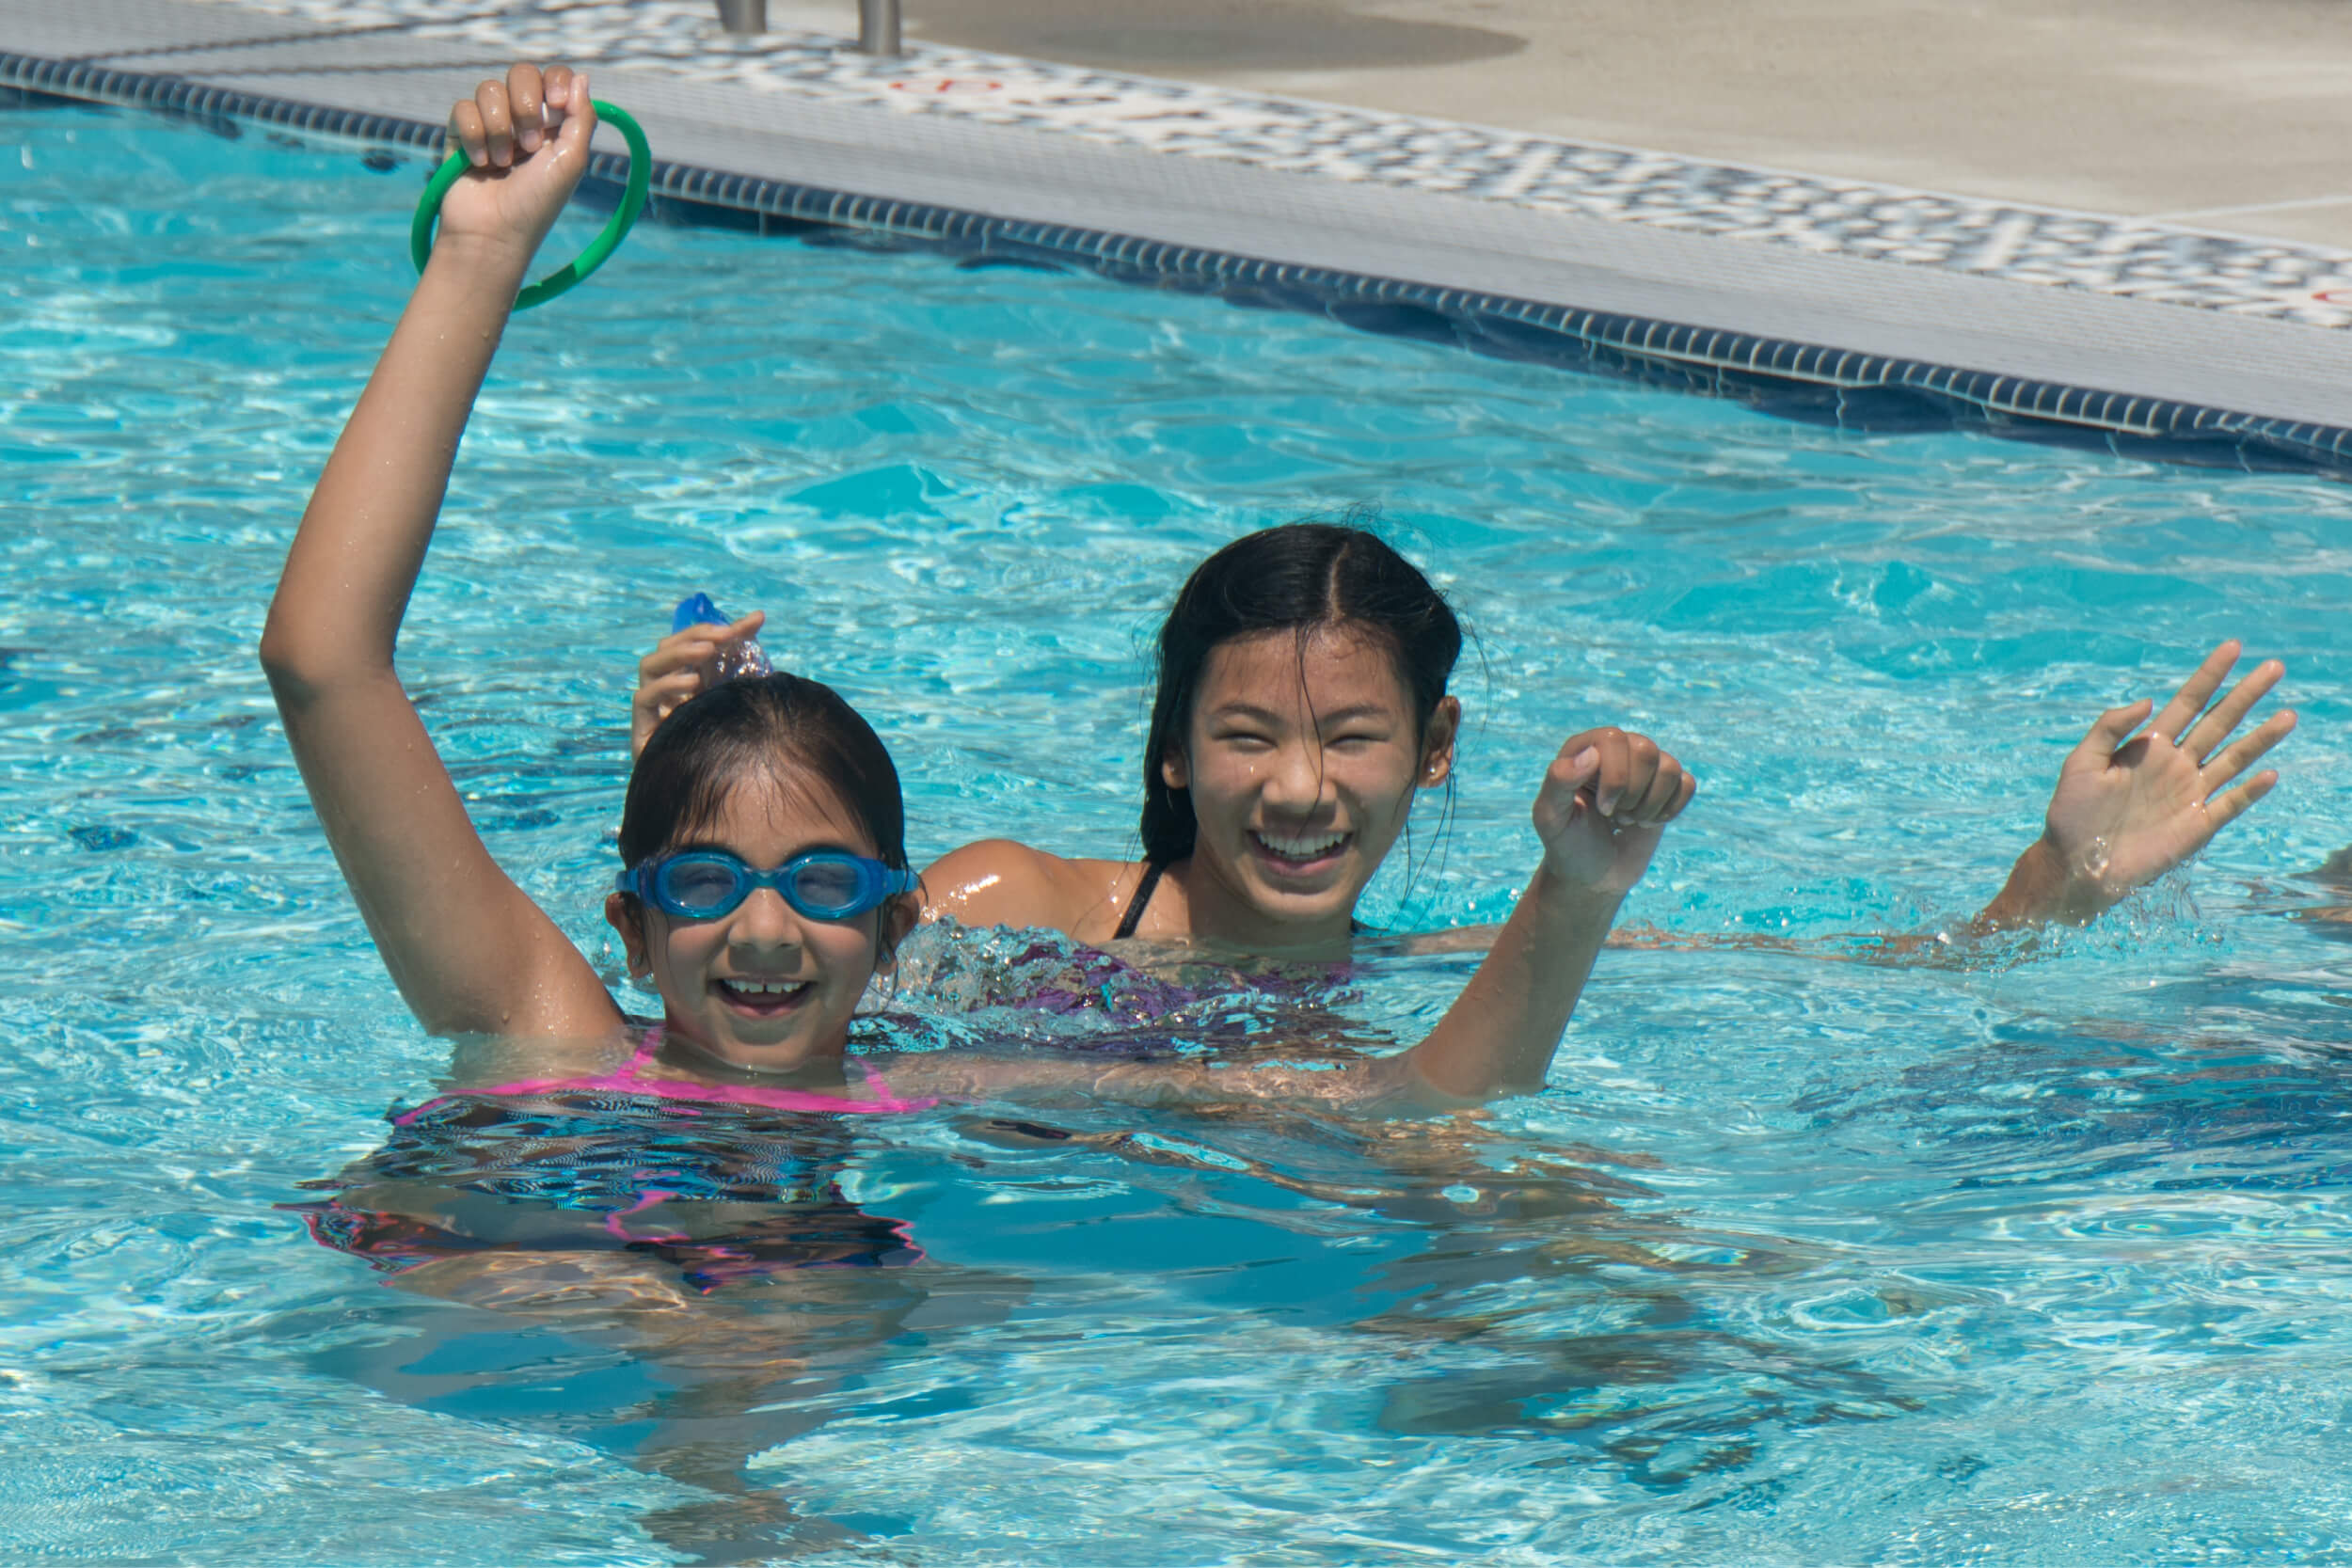 Two children smiling while swimming in the pool and holding ring toys